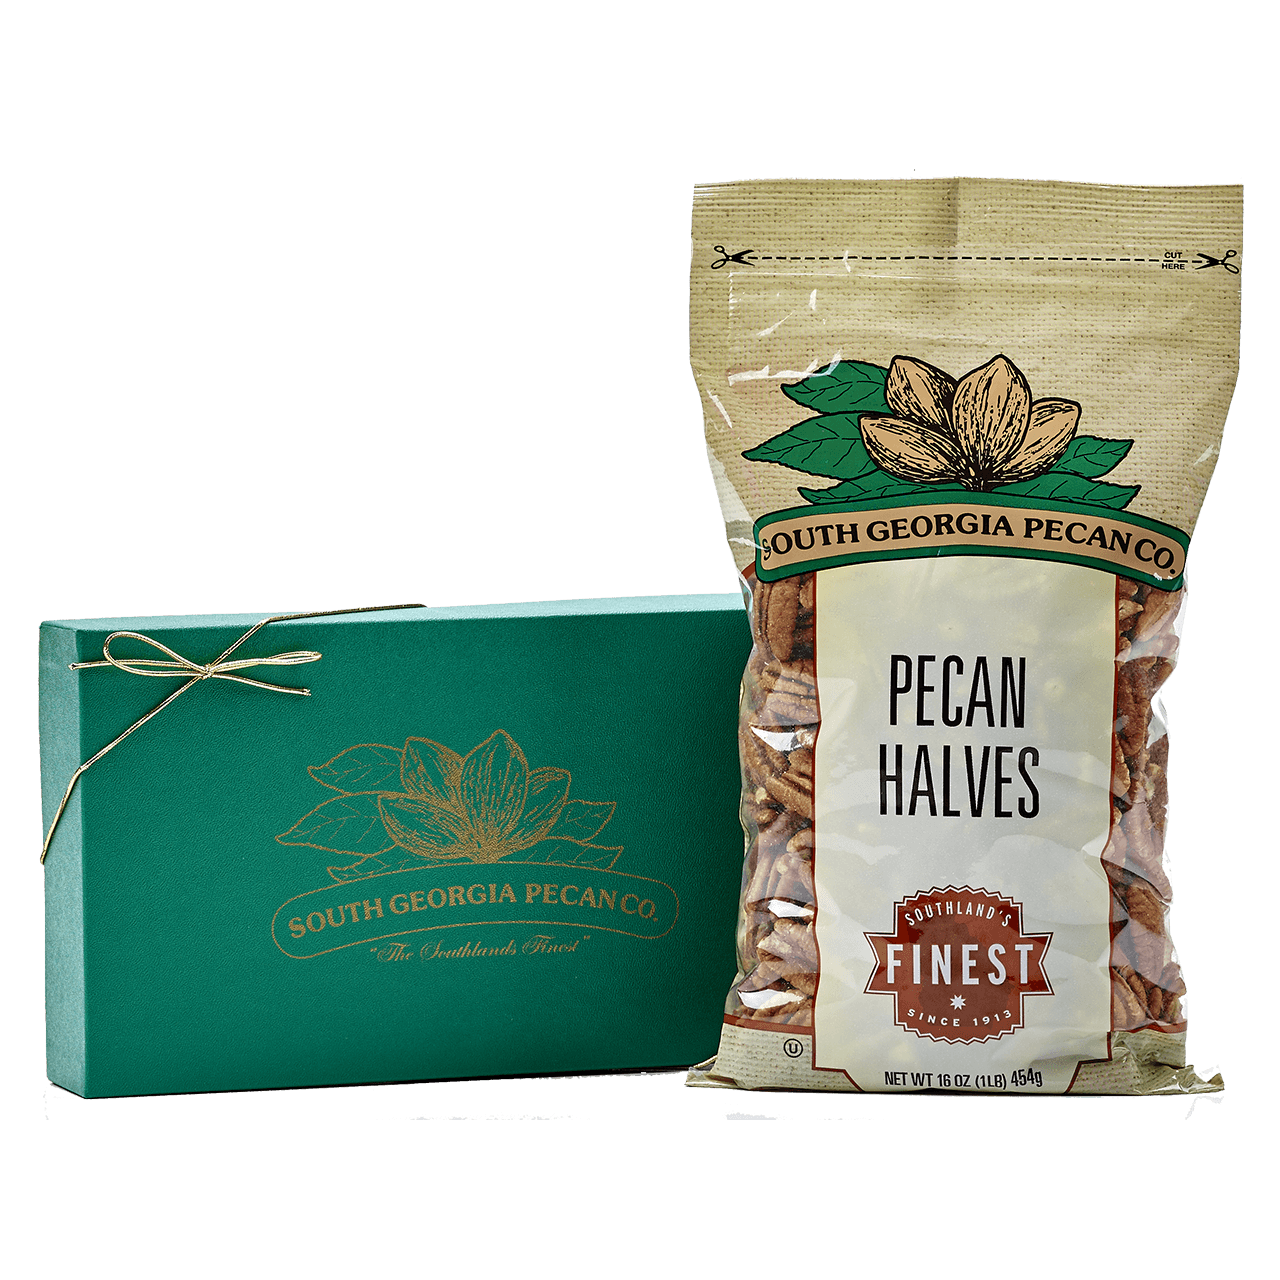 Build your own 1lb Gift Box - Final Price Determined by Selection  sc 1 st  South Georgia Pecan & Build Your Own 1 lb. Gift Box